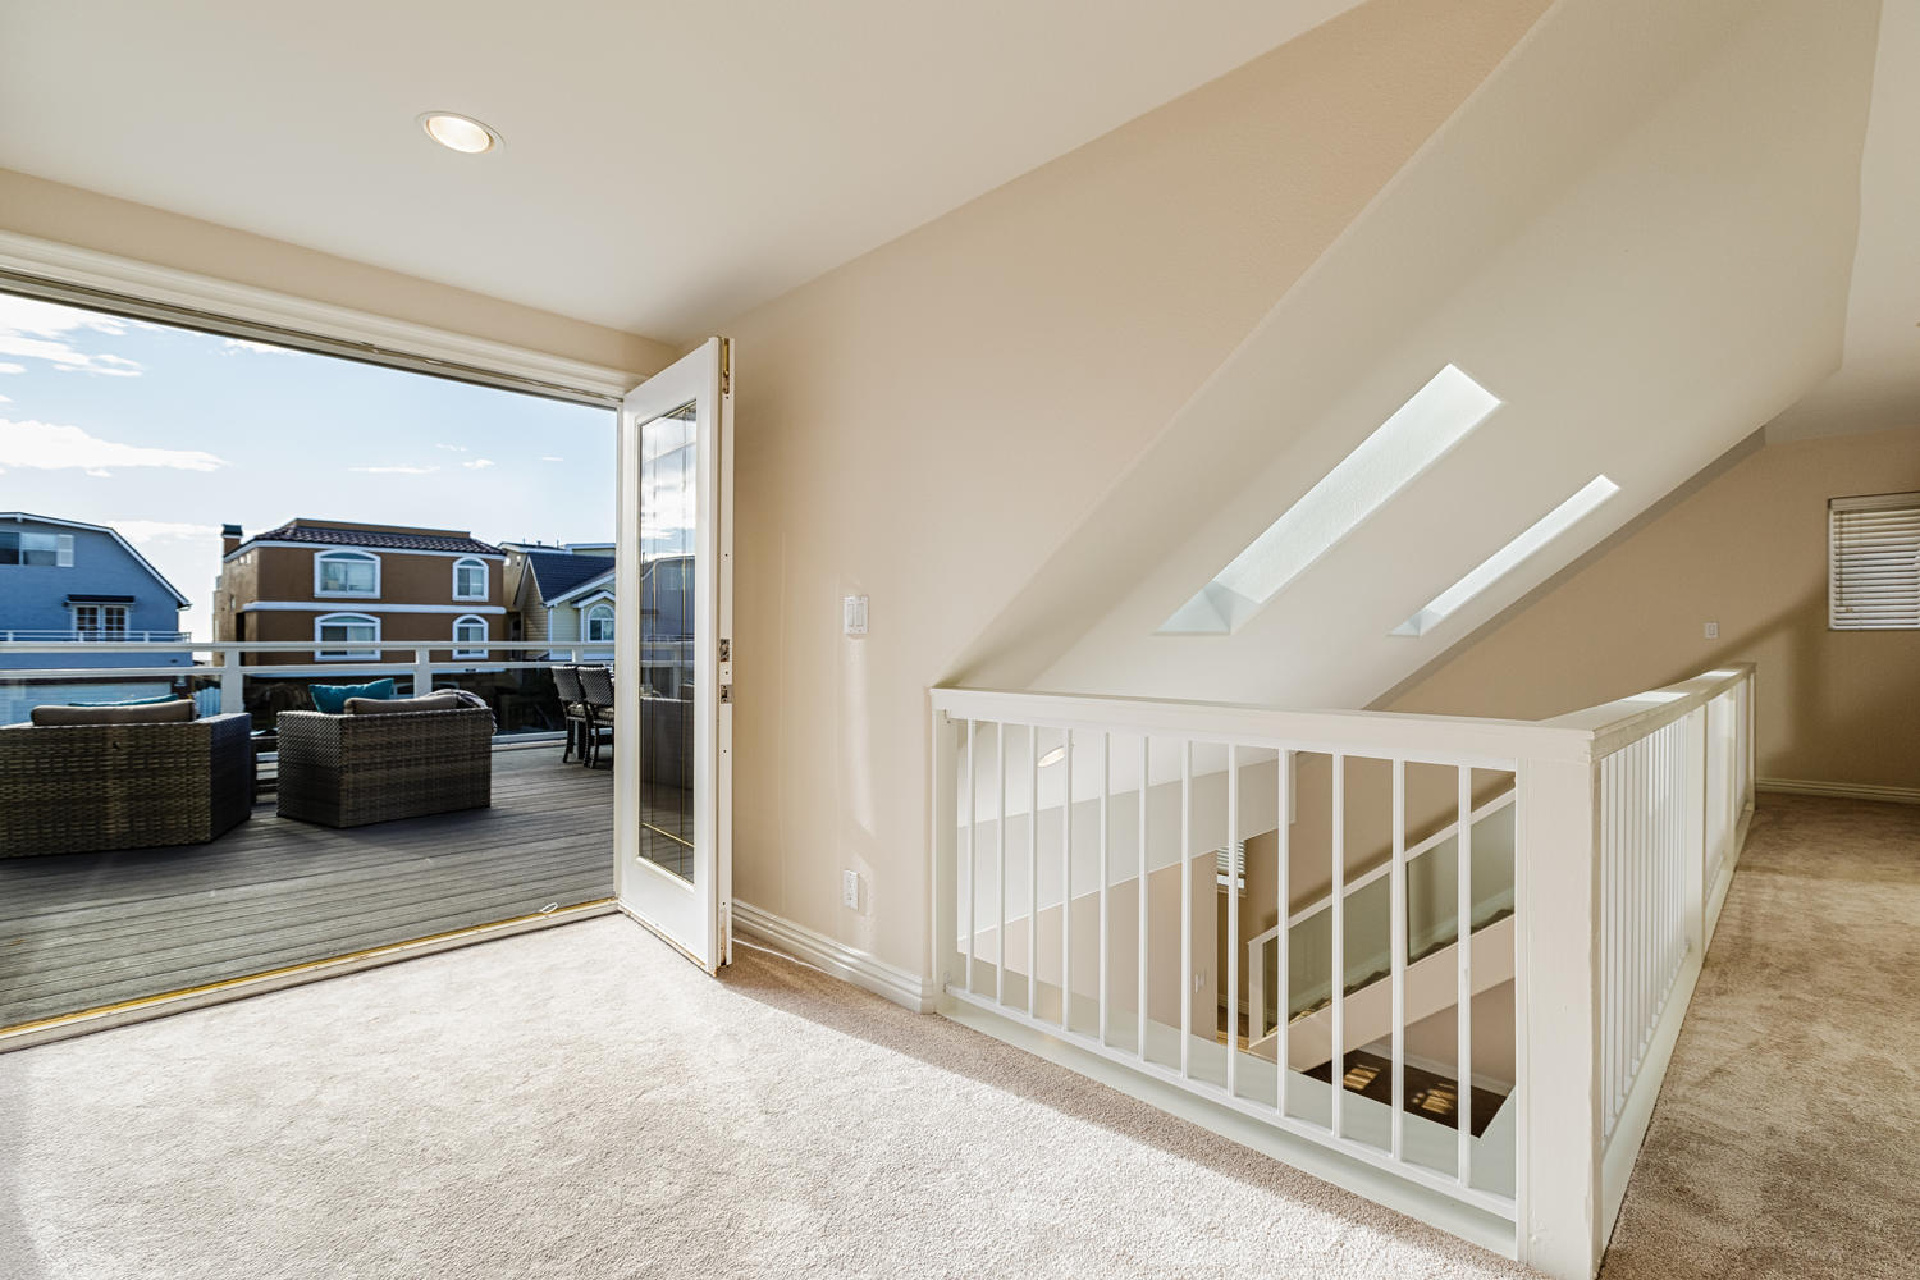 https://www.addressrealestate.com/media/images/blogs/38/2/b_15-1408-ocean-dr-oxnard-ca-93035-mls-size-009-8-upstairs-to-balcony-1500x1000-72dpi.jpg